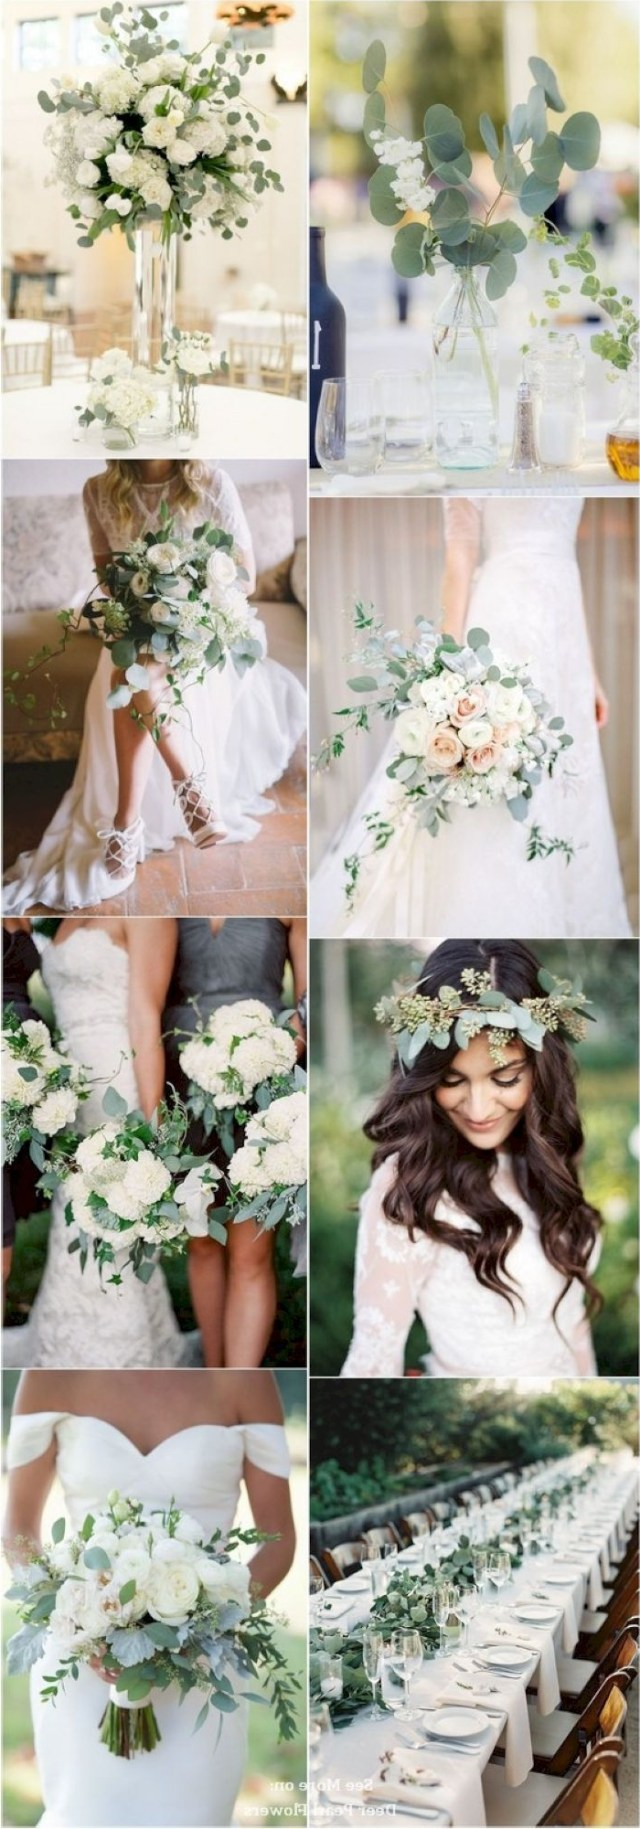 Cheap Wedding Ideas 15 Cheap Wedding Ideas On A Budget Best Wedding Style